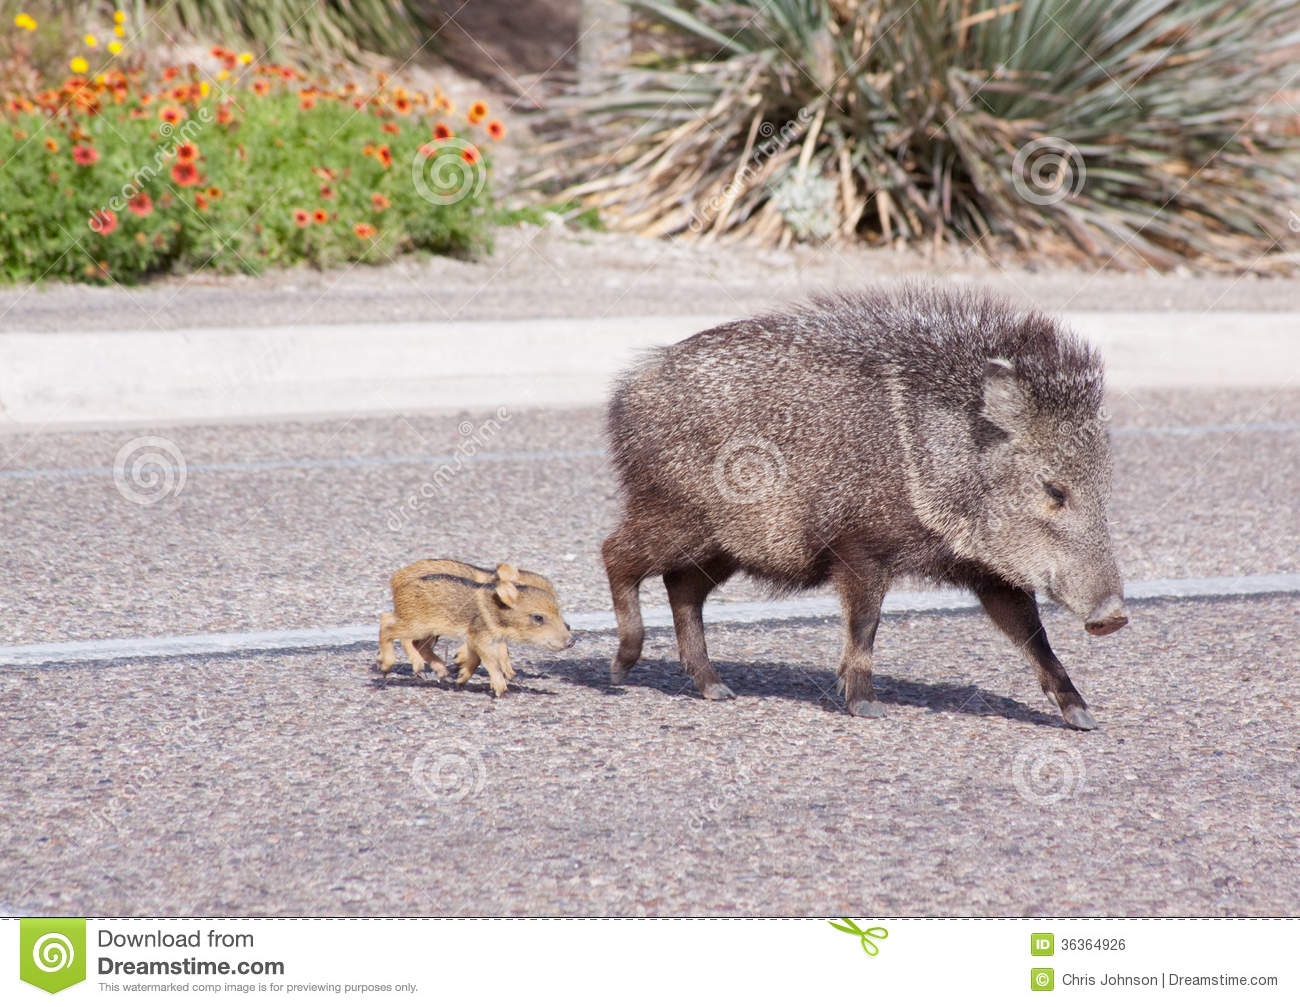 Wild Javelina And Babies Royalty Free Stock Image - Image: 36364926